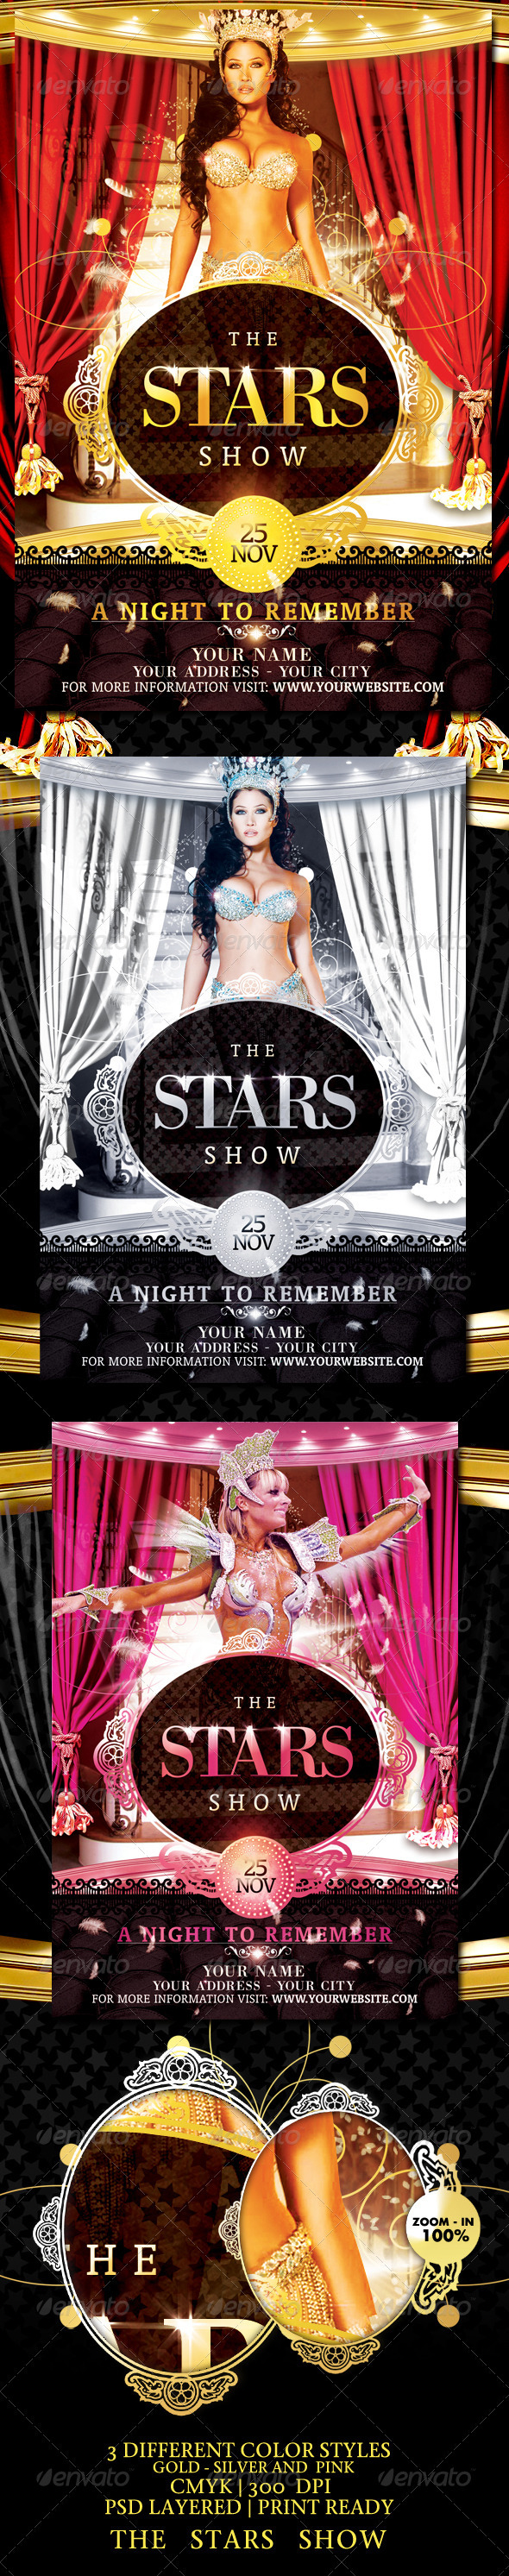 book signing poster template - the stars show flyer template by touringxx graphicriver